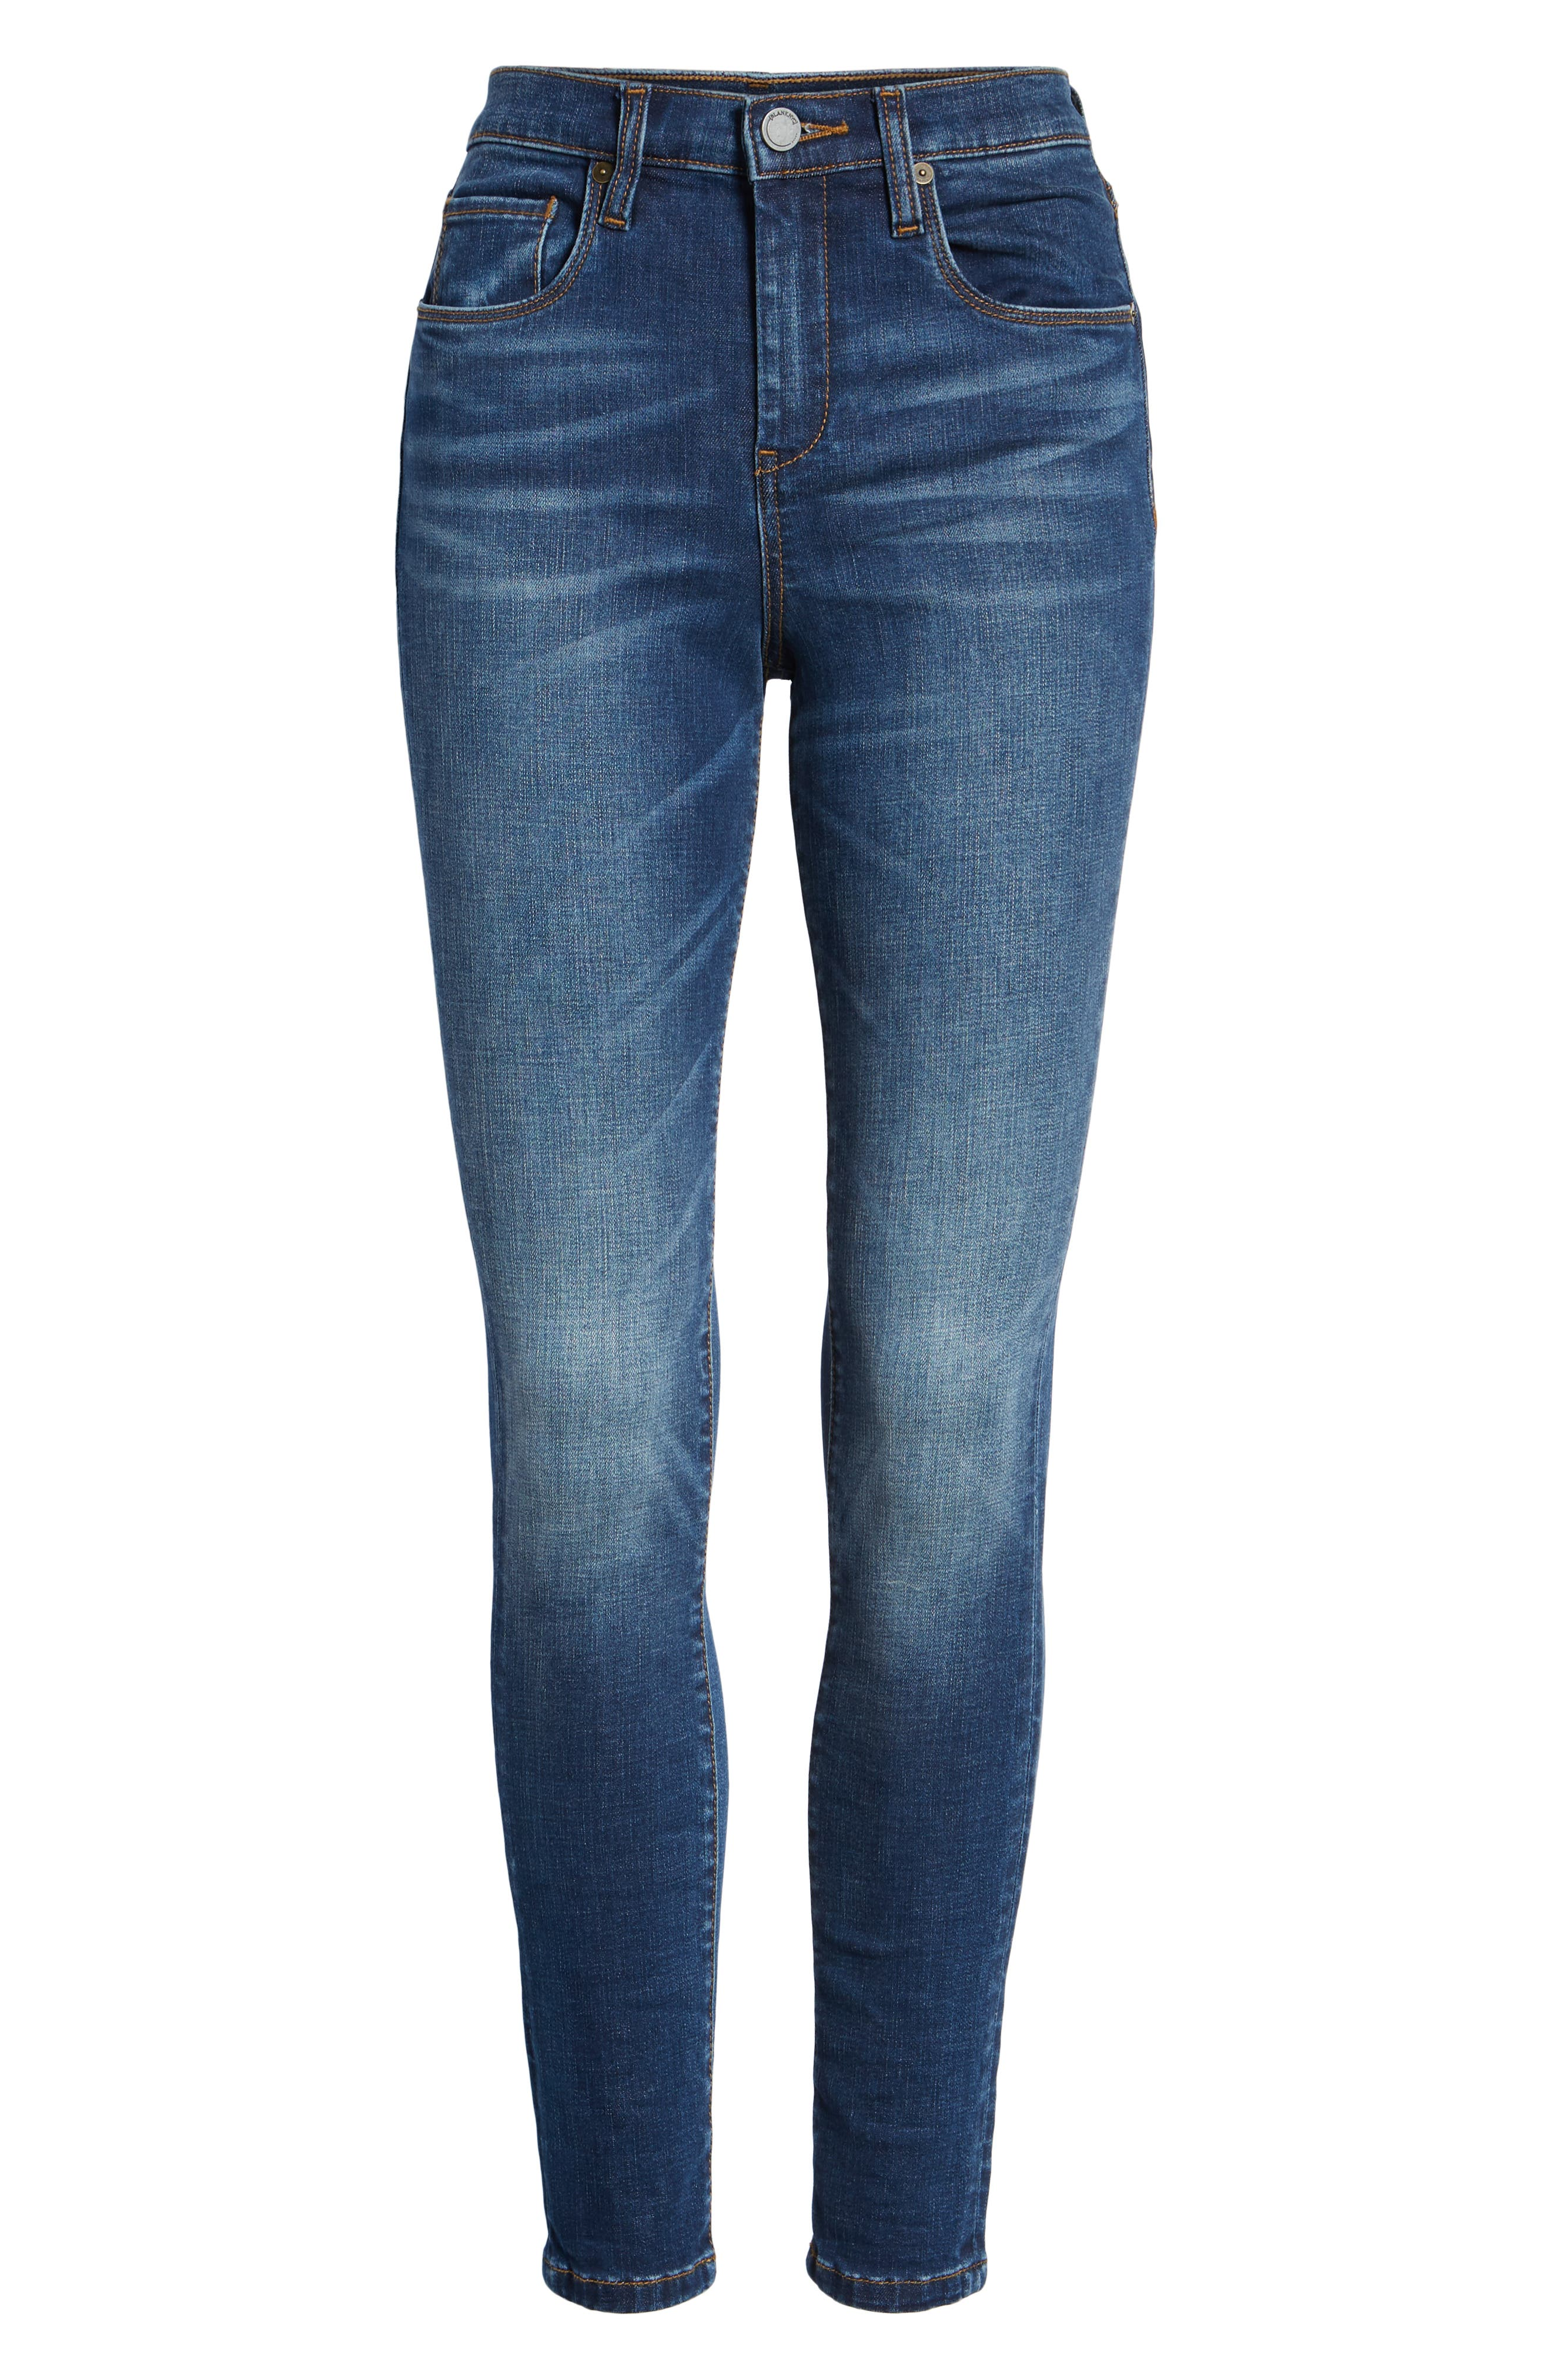 High Waist Skinny Jeans,                             Alternate thumbnail 7, color,                             ROUGH RIDER